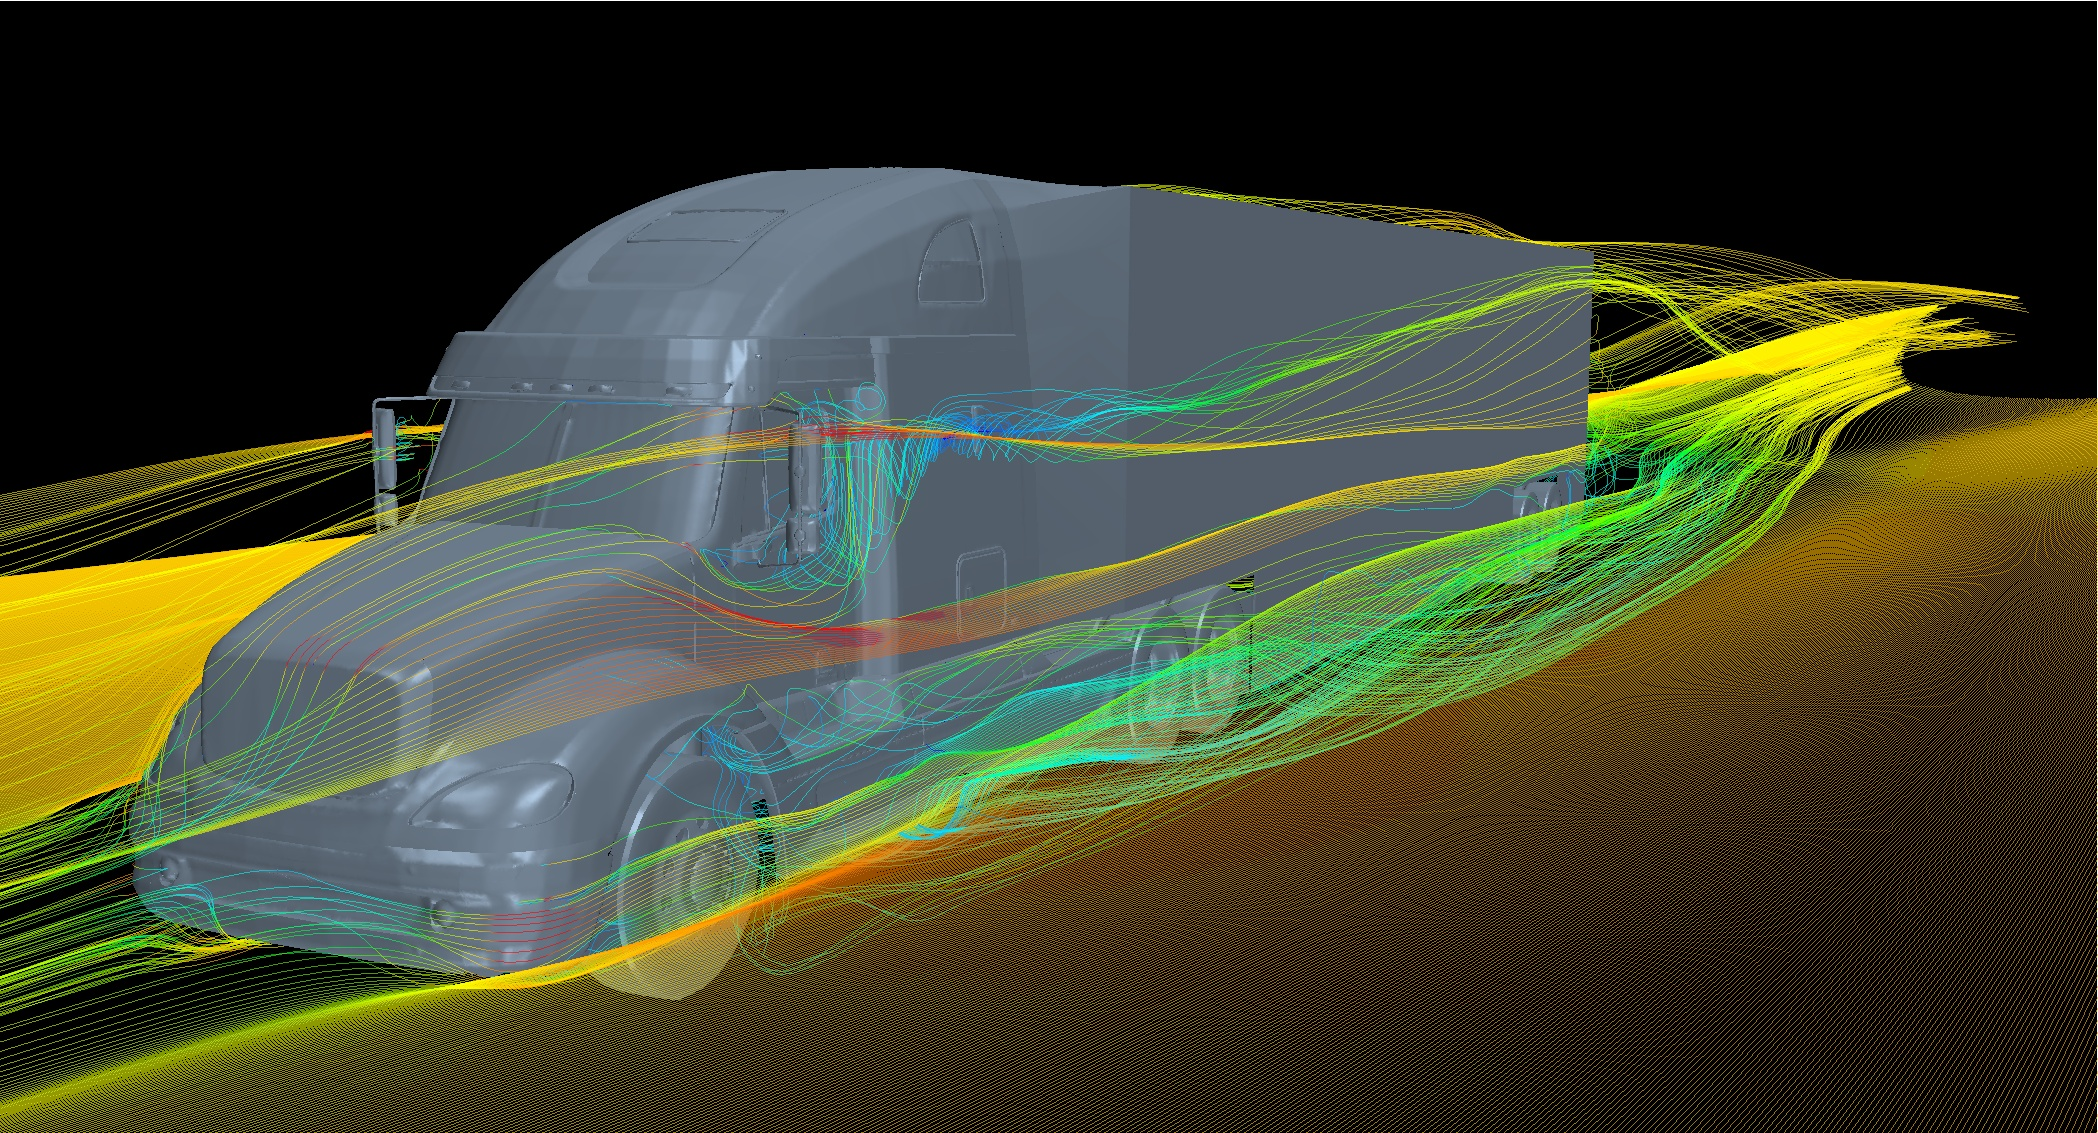 ... potential of drag-reducing devices on semi-trucks to conserve energy